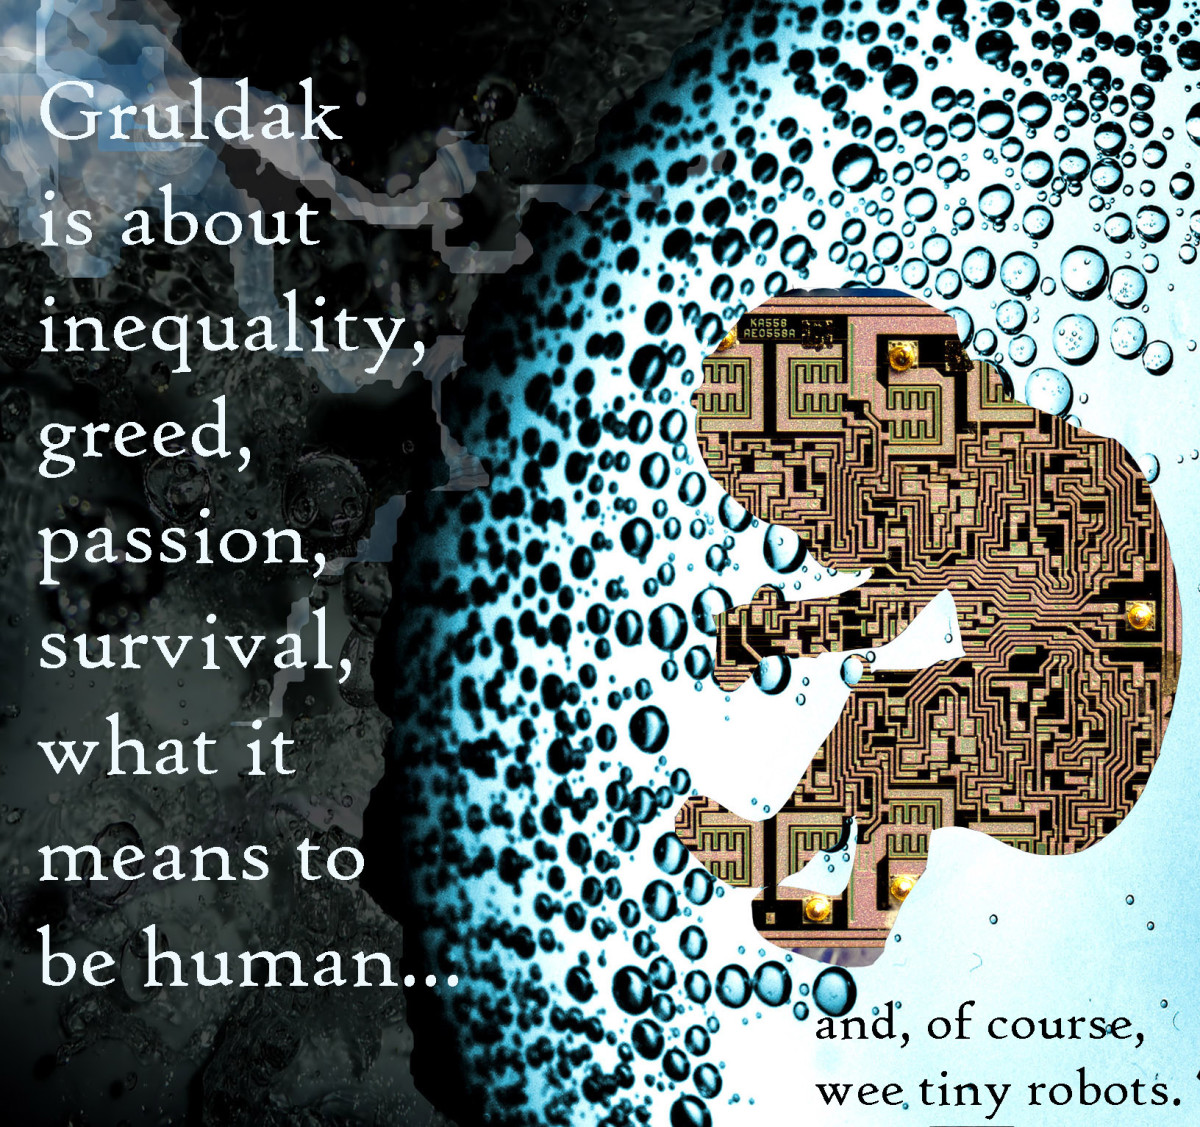 Gift of the Gruldak is a serialized science fiction novel that's free to read online only on the HubPages family of websites.